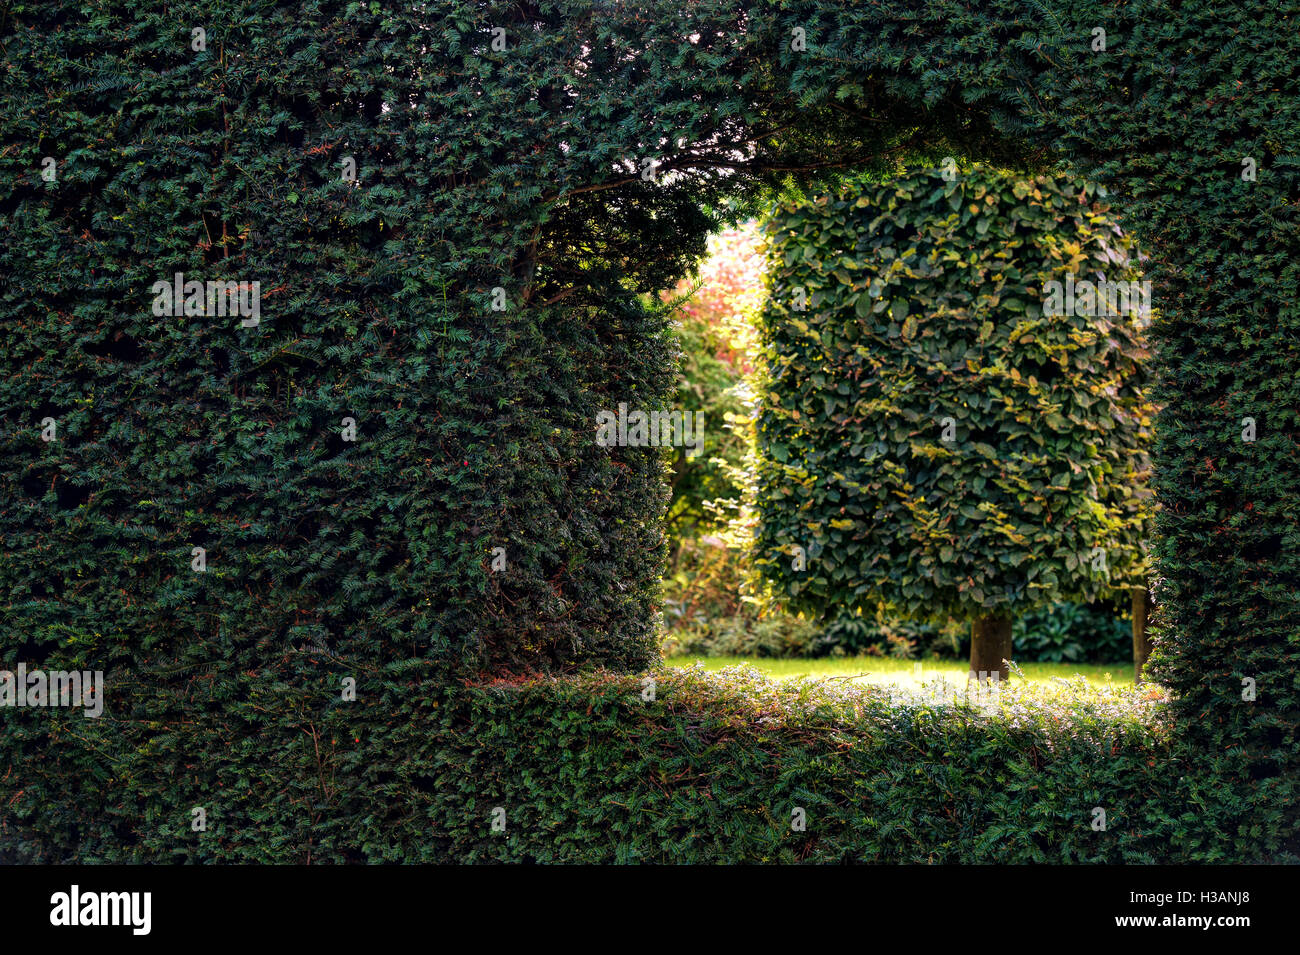 Looking through a hole in the yew hedge into a garden at Waterperry gardens, Wheatley, Oxfordshire. England - Stock Image